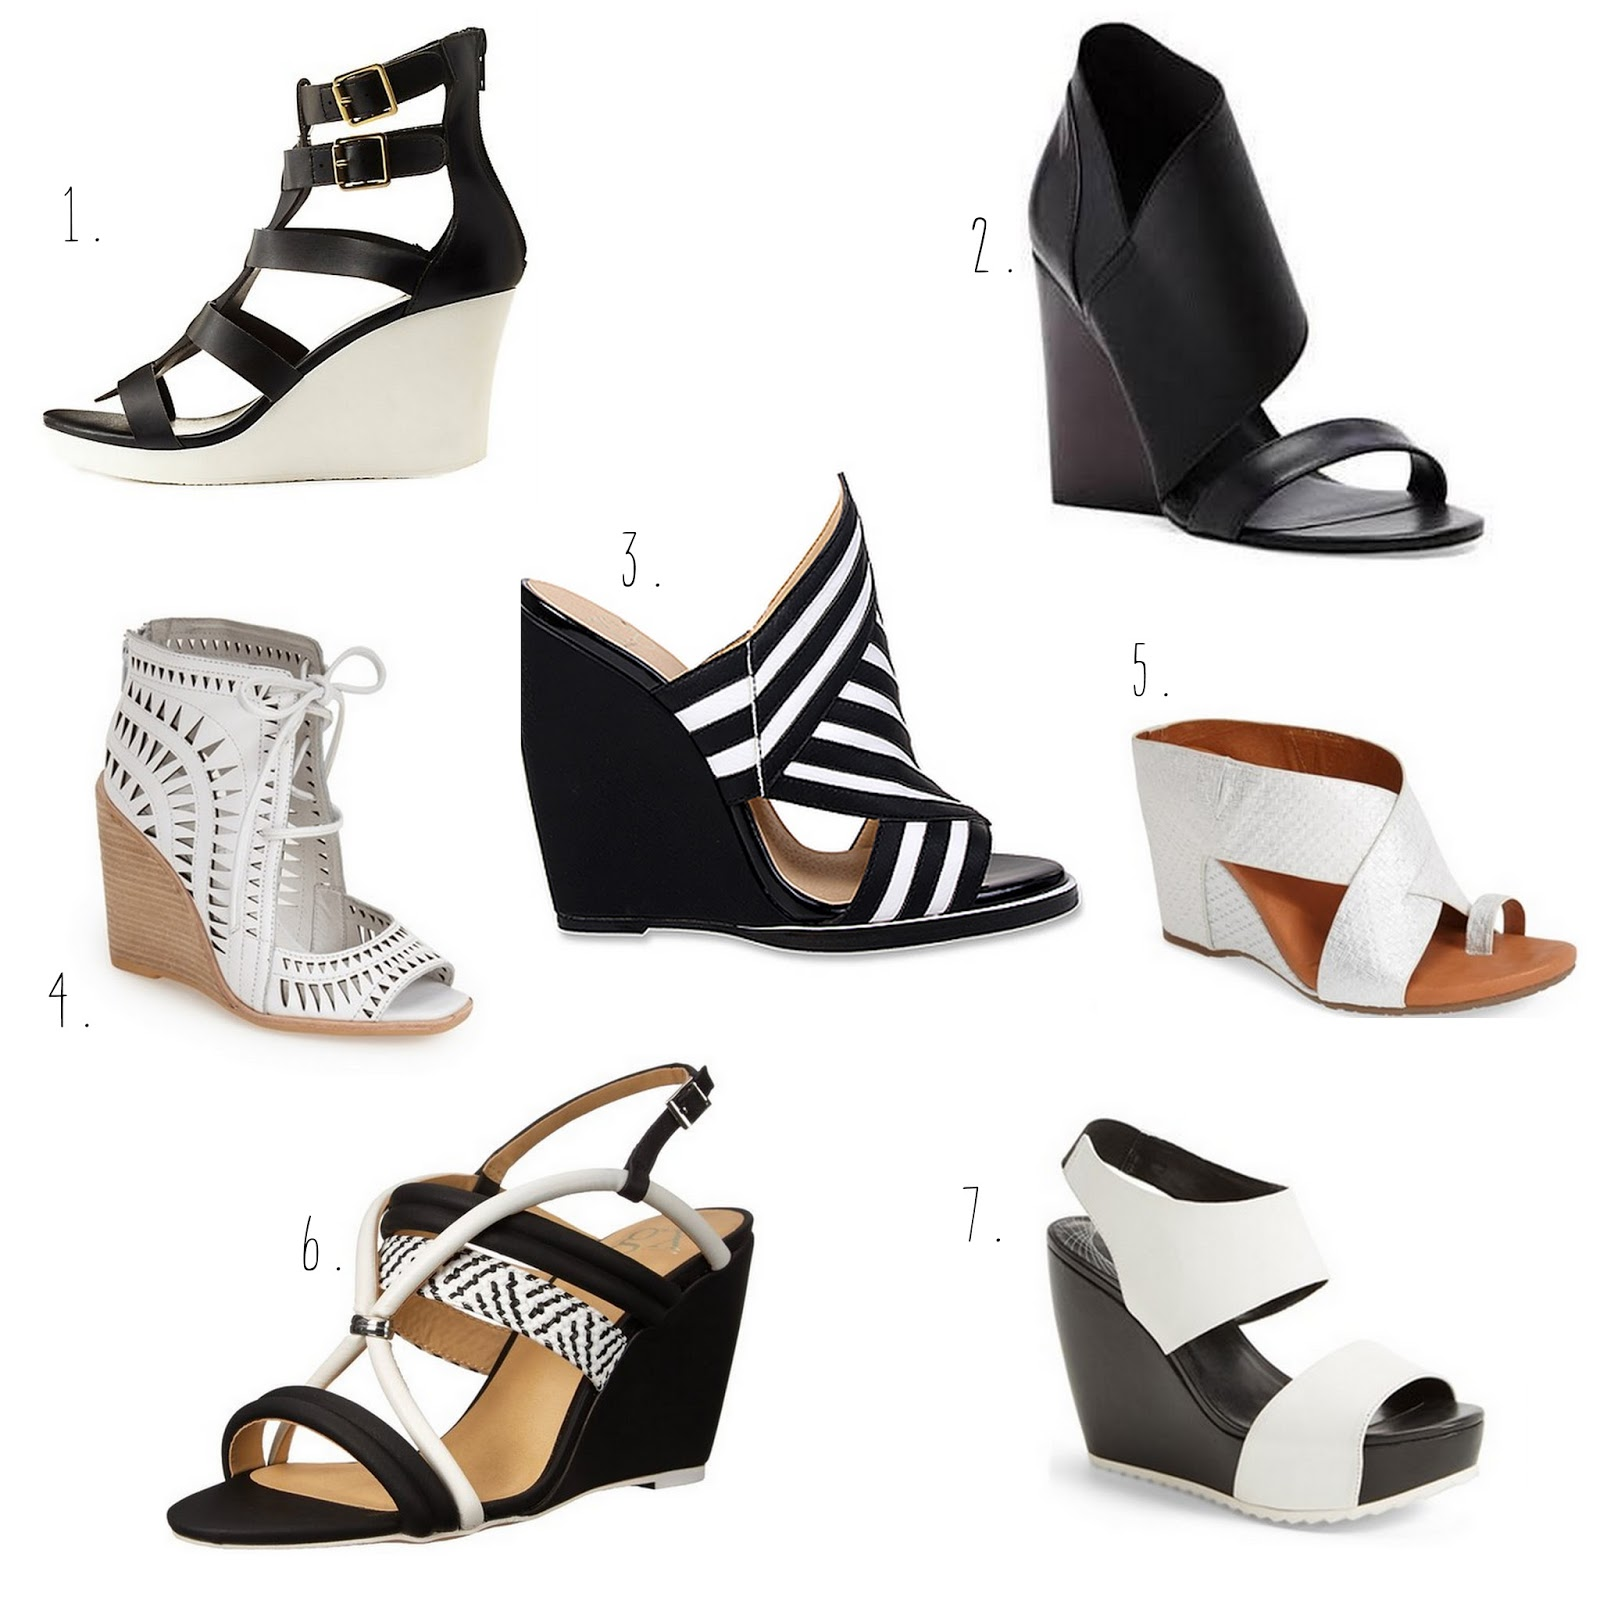 7 in SEVEN  BLACK AND WHITE WEDGES – simplycyn 0a0caeb699a6